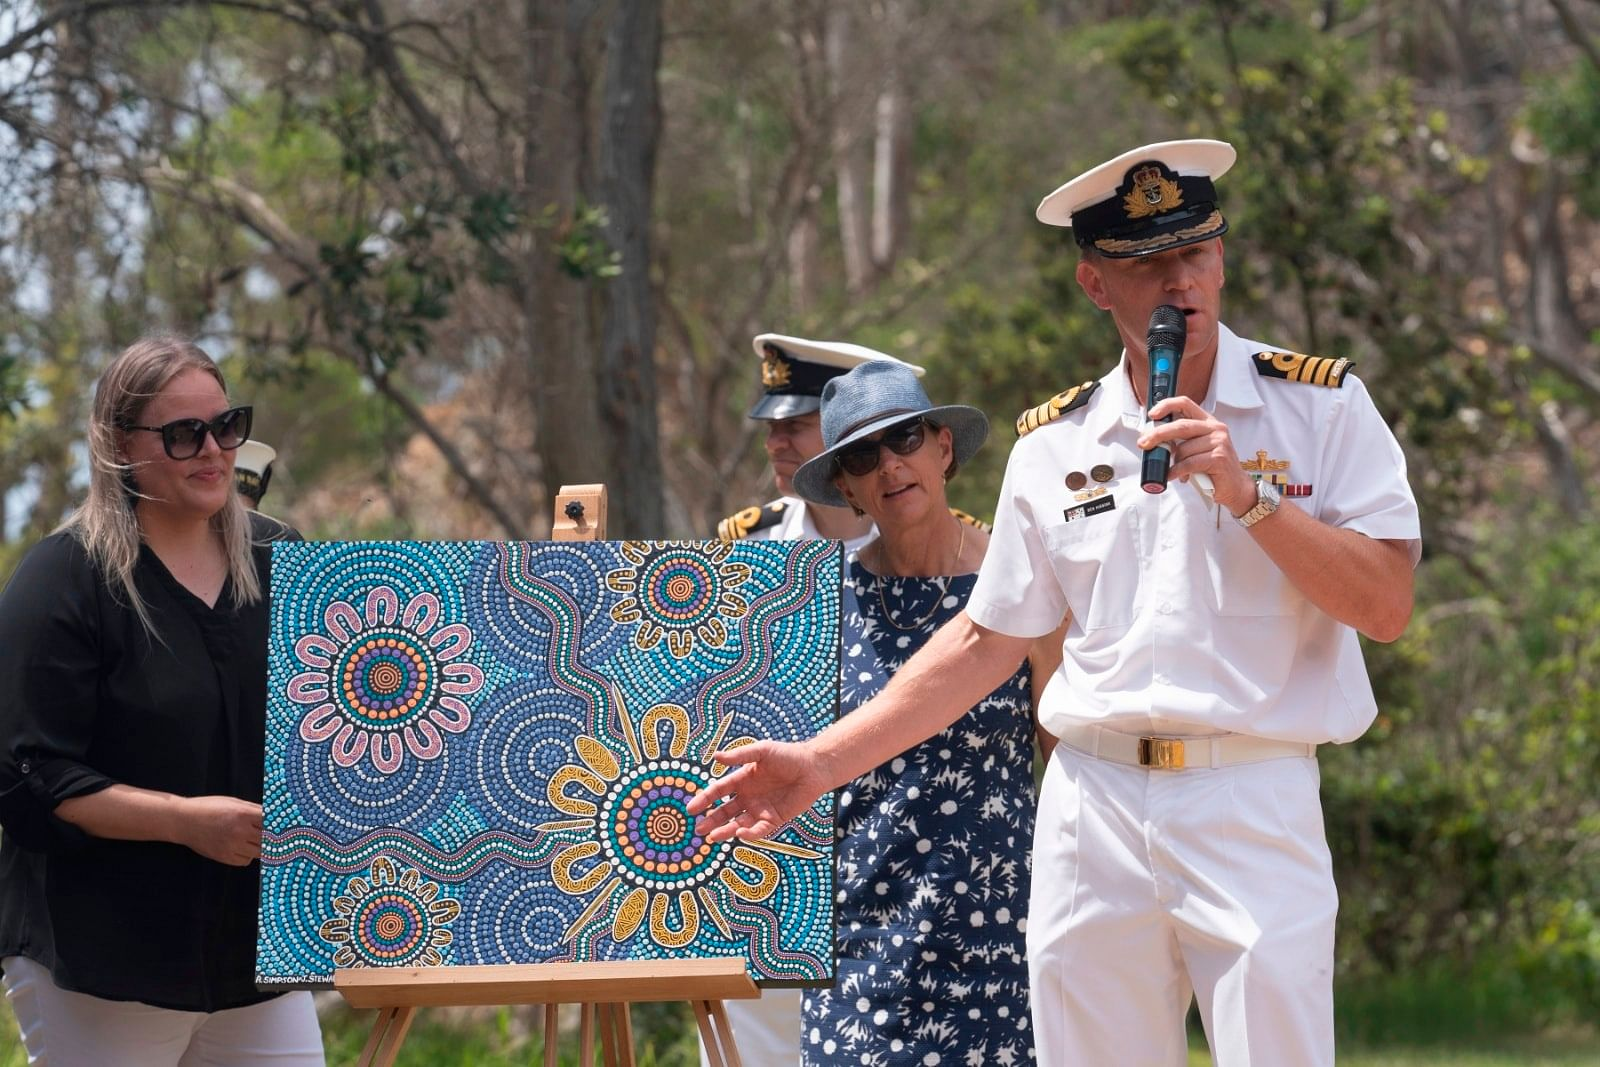 Indigenous artist Alison Simpson with the artwork that is the backdrop to the ship's mascot.